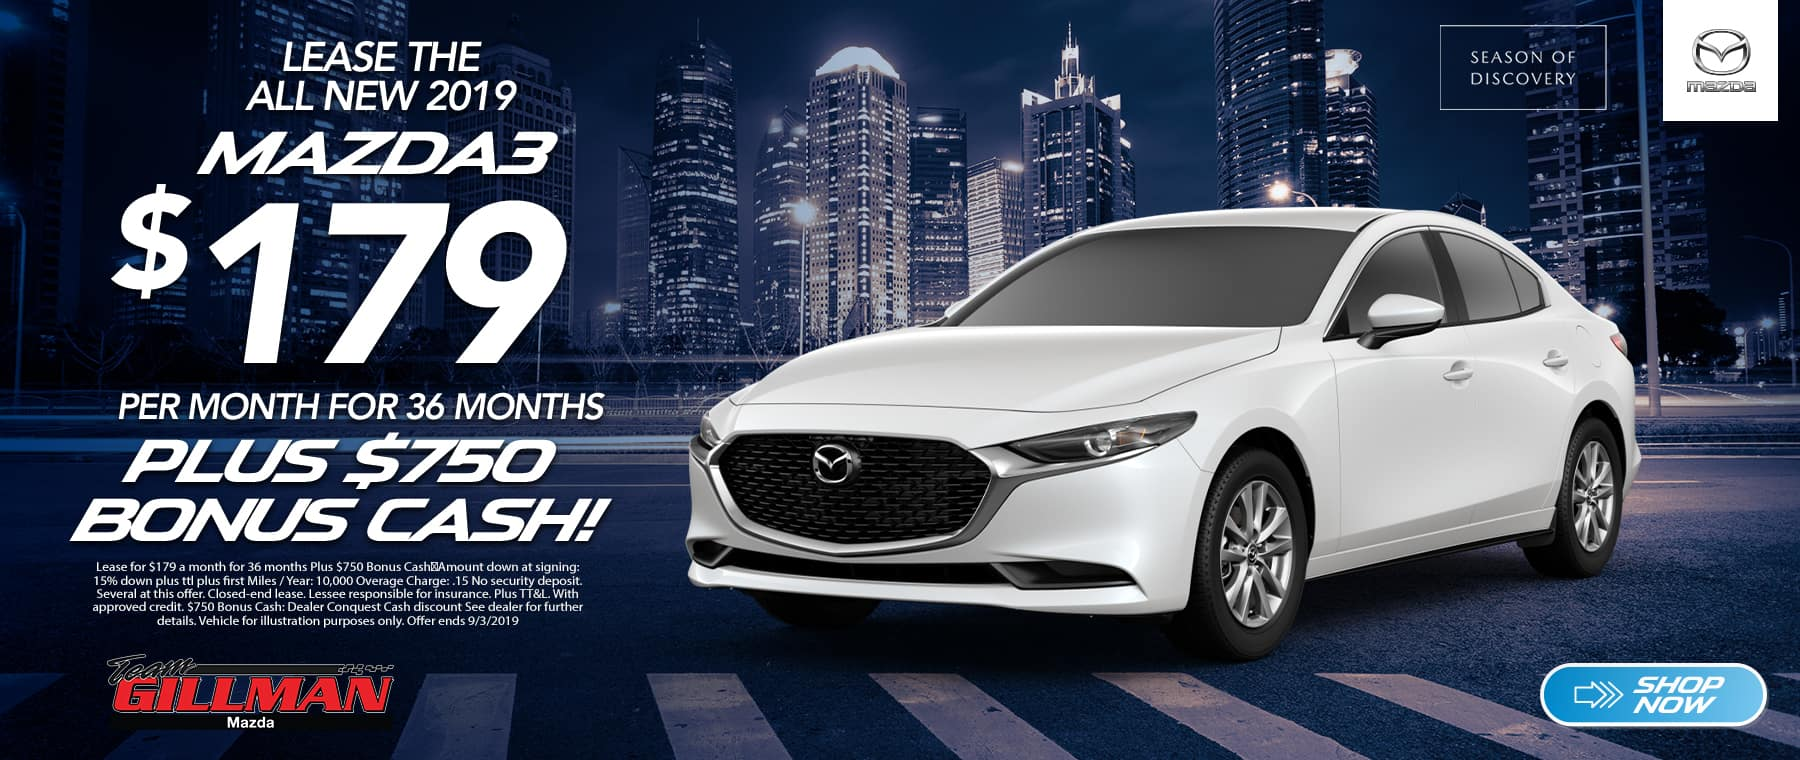 2019_Team_Gillman_Mazda_3_Lease_Offers